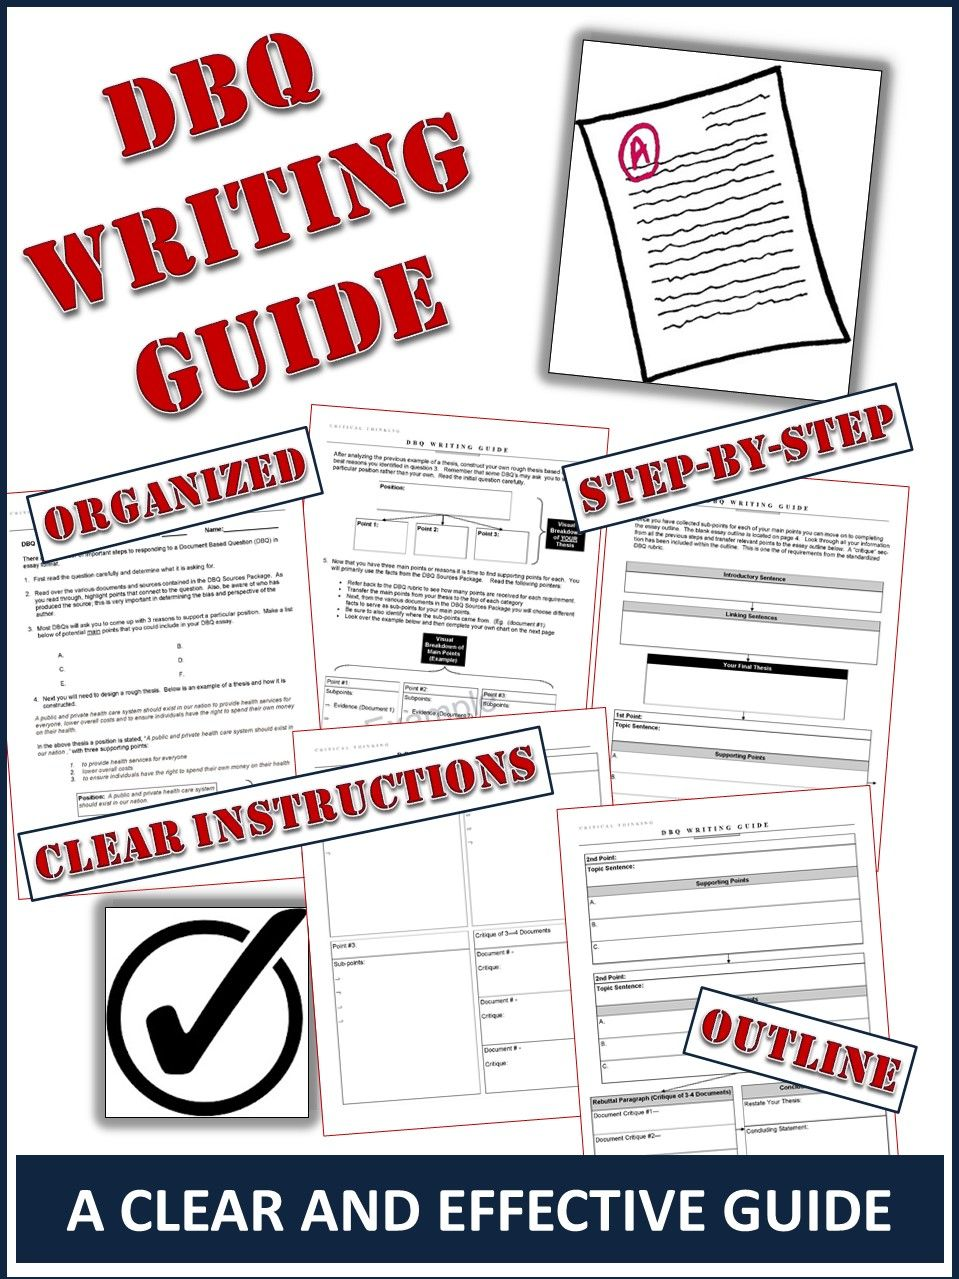 006 DBQ Writing Guide A Clear 5 Page, StepbyStep Guide to